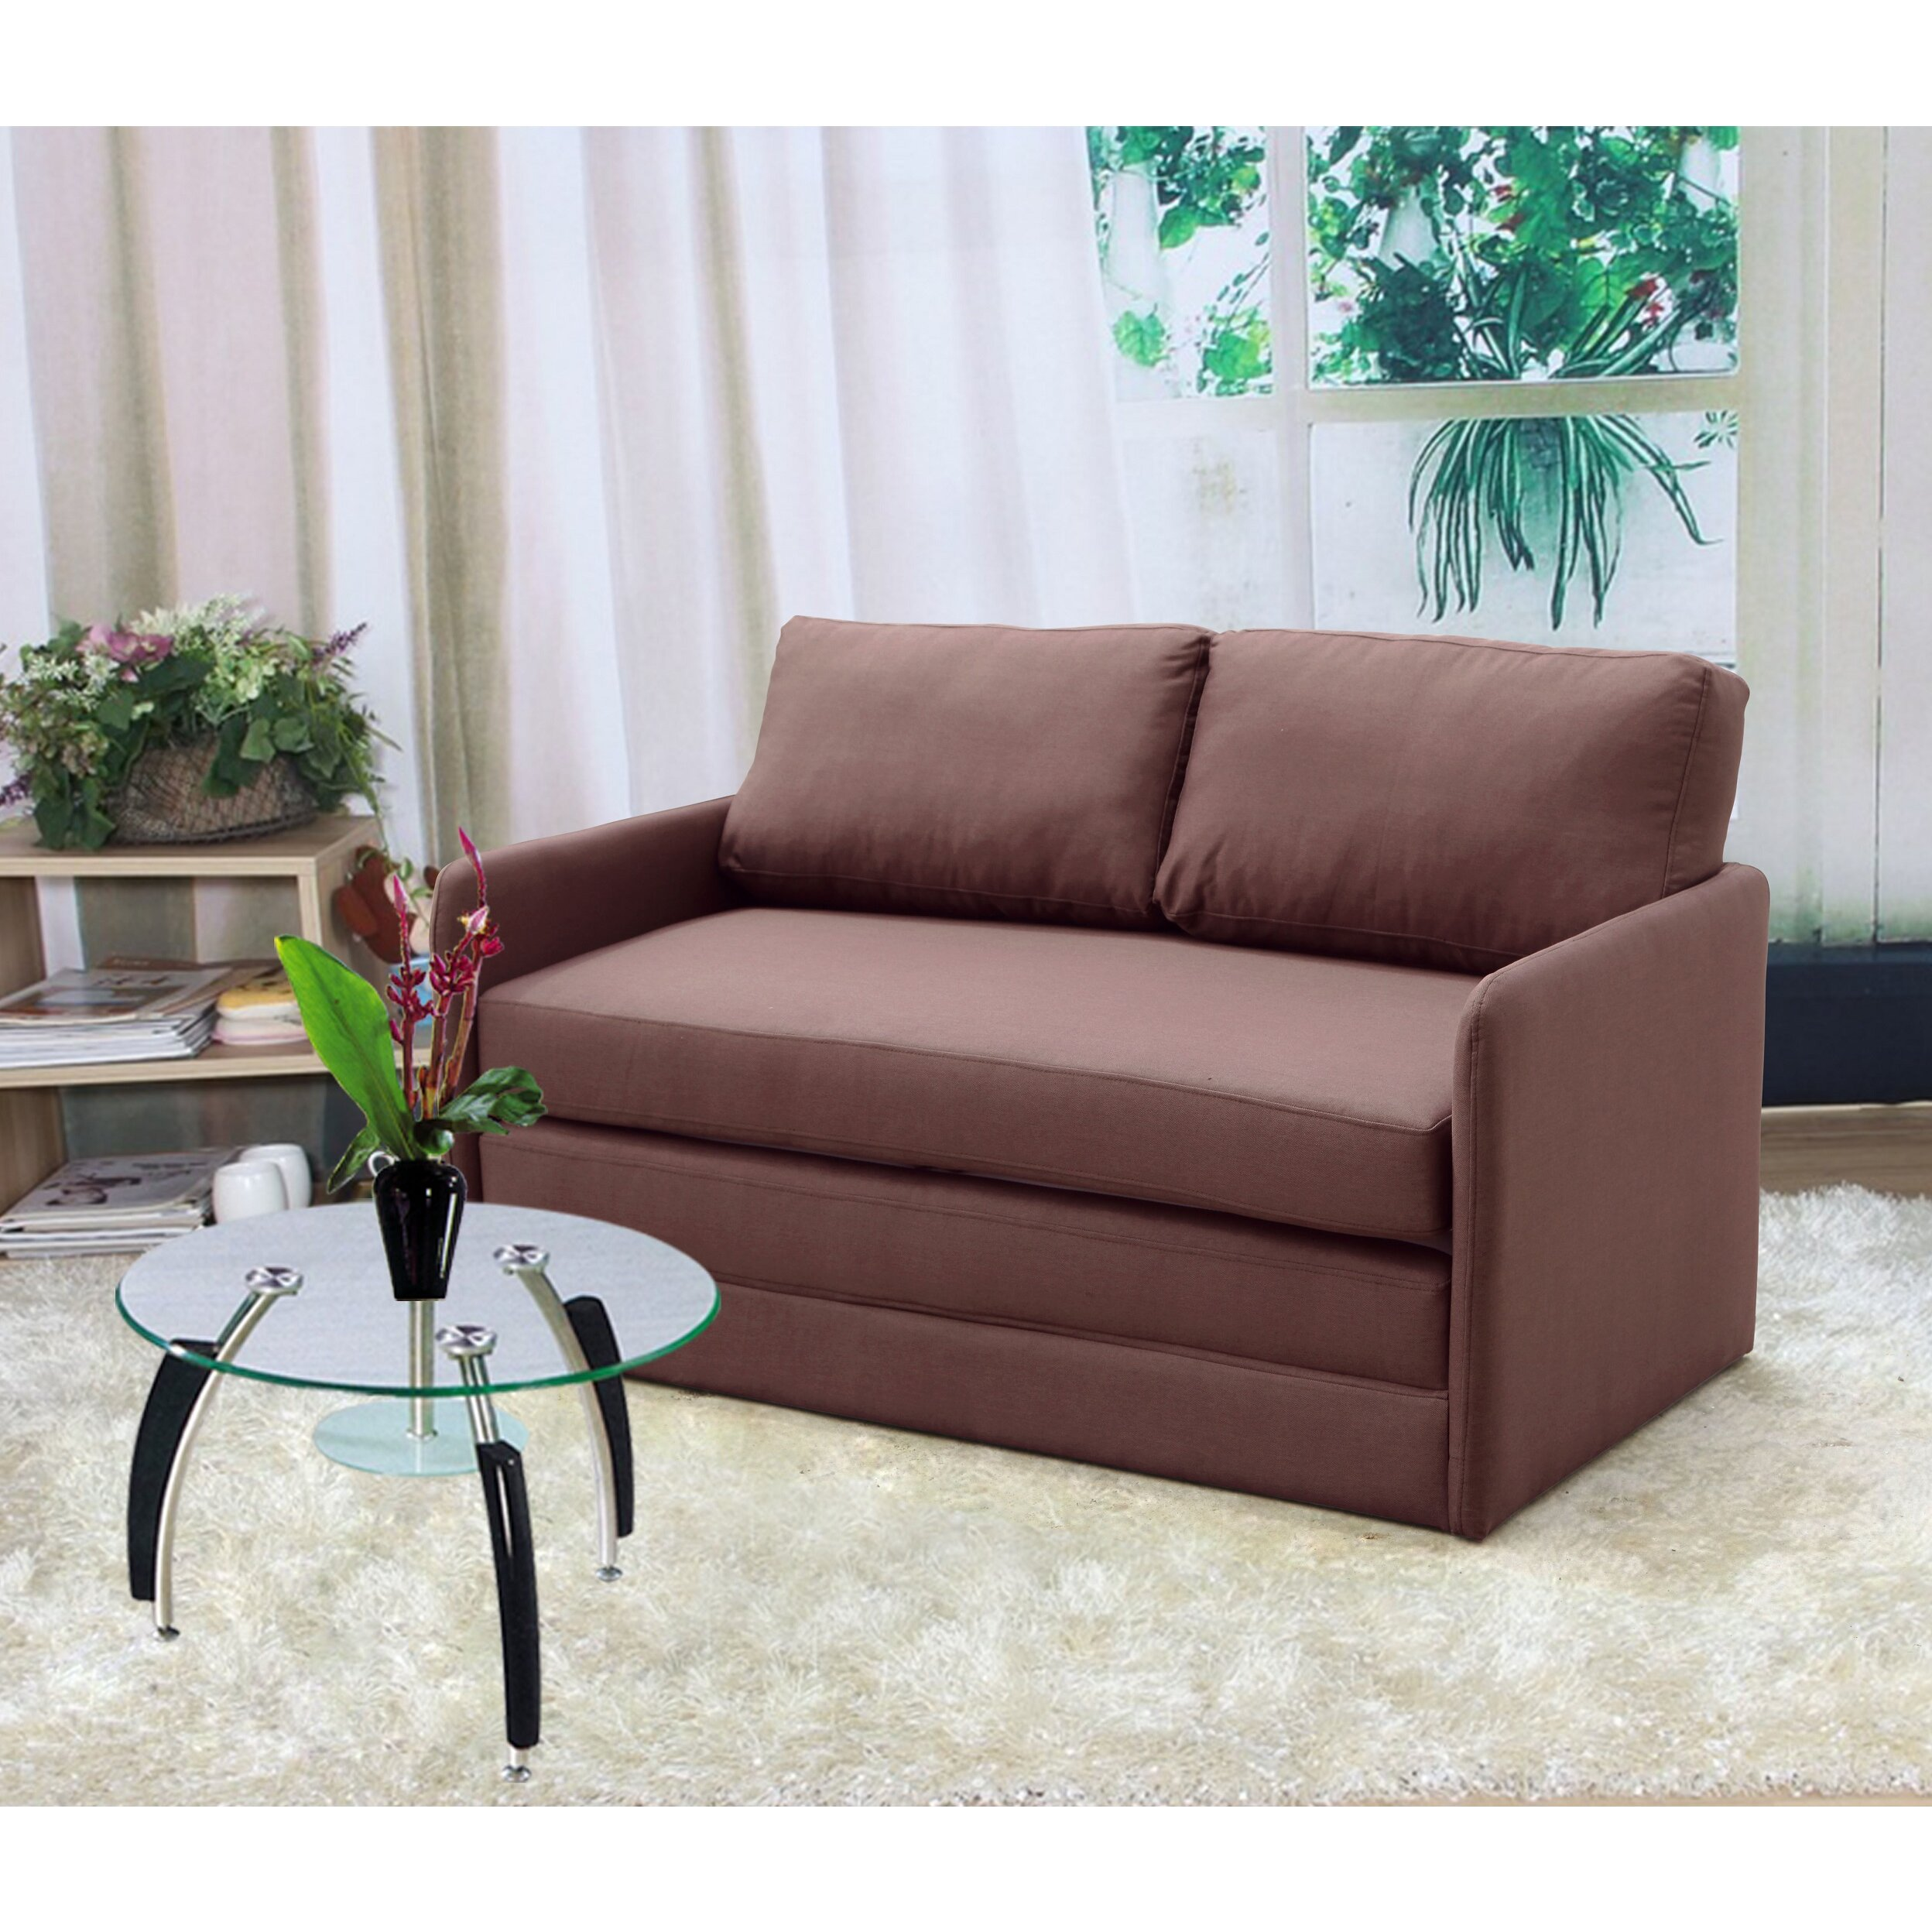 Couches That Turn Into Beds Perfect Apartment Sofas Couches Urban